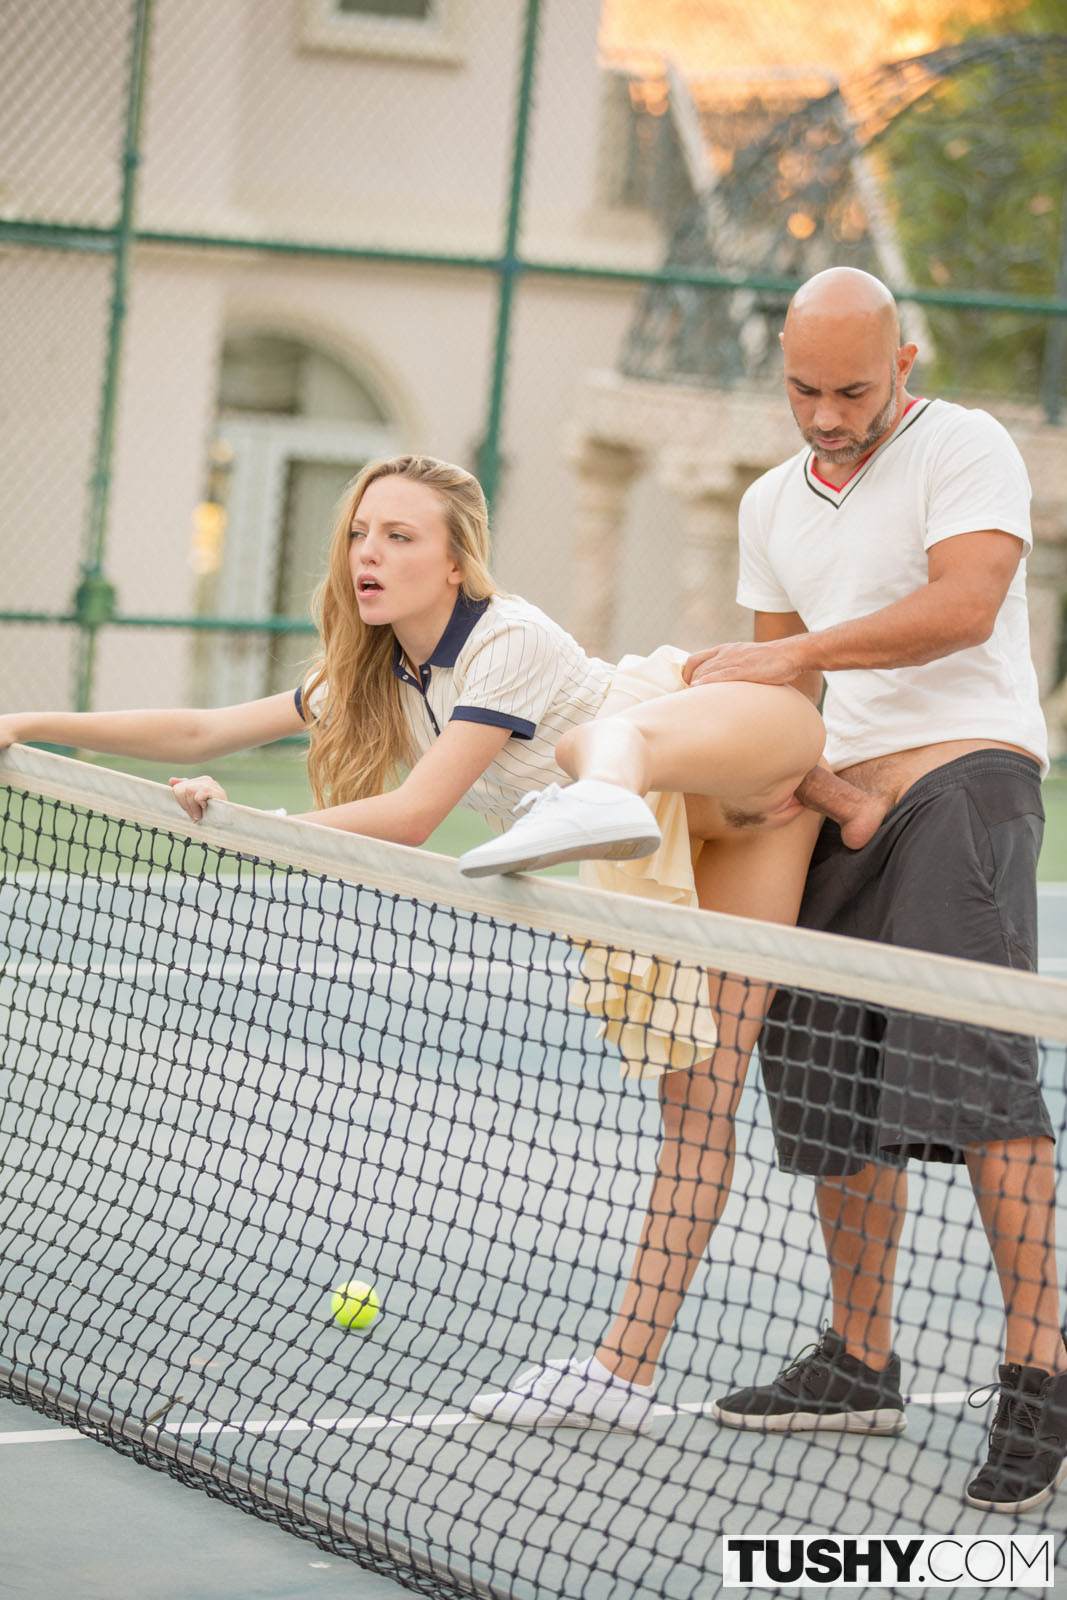 Tushy Aubrey Star In Tennis Student Gets Anal Lesson With -7542